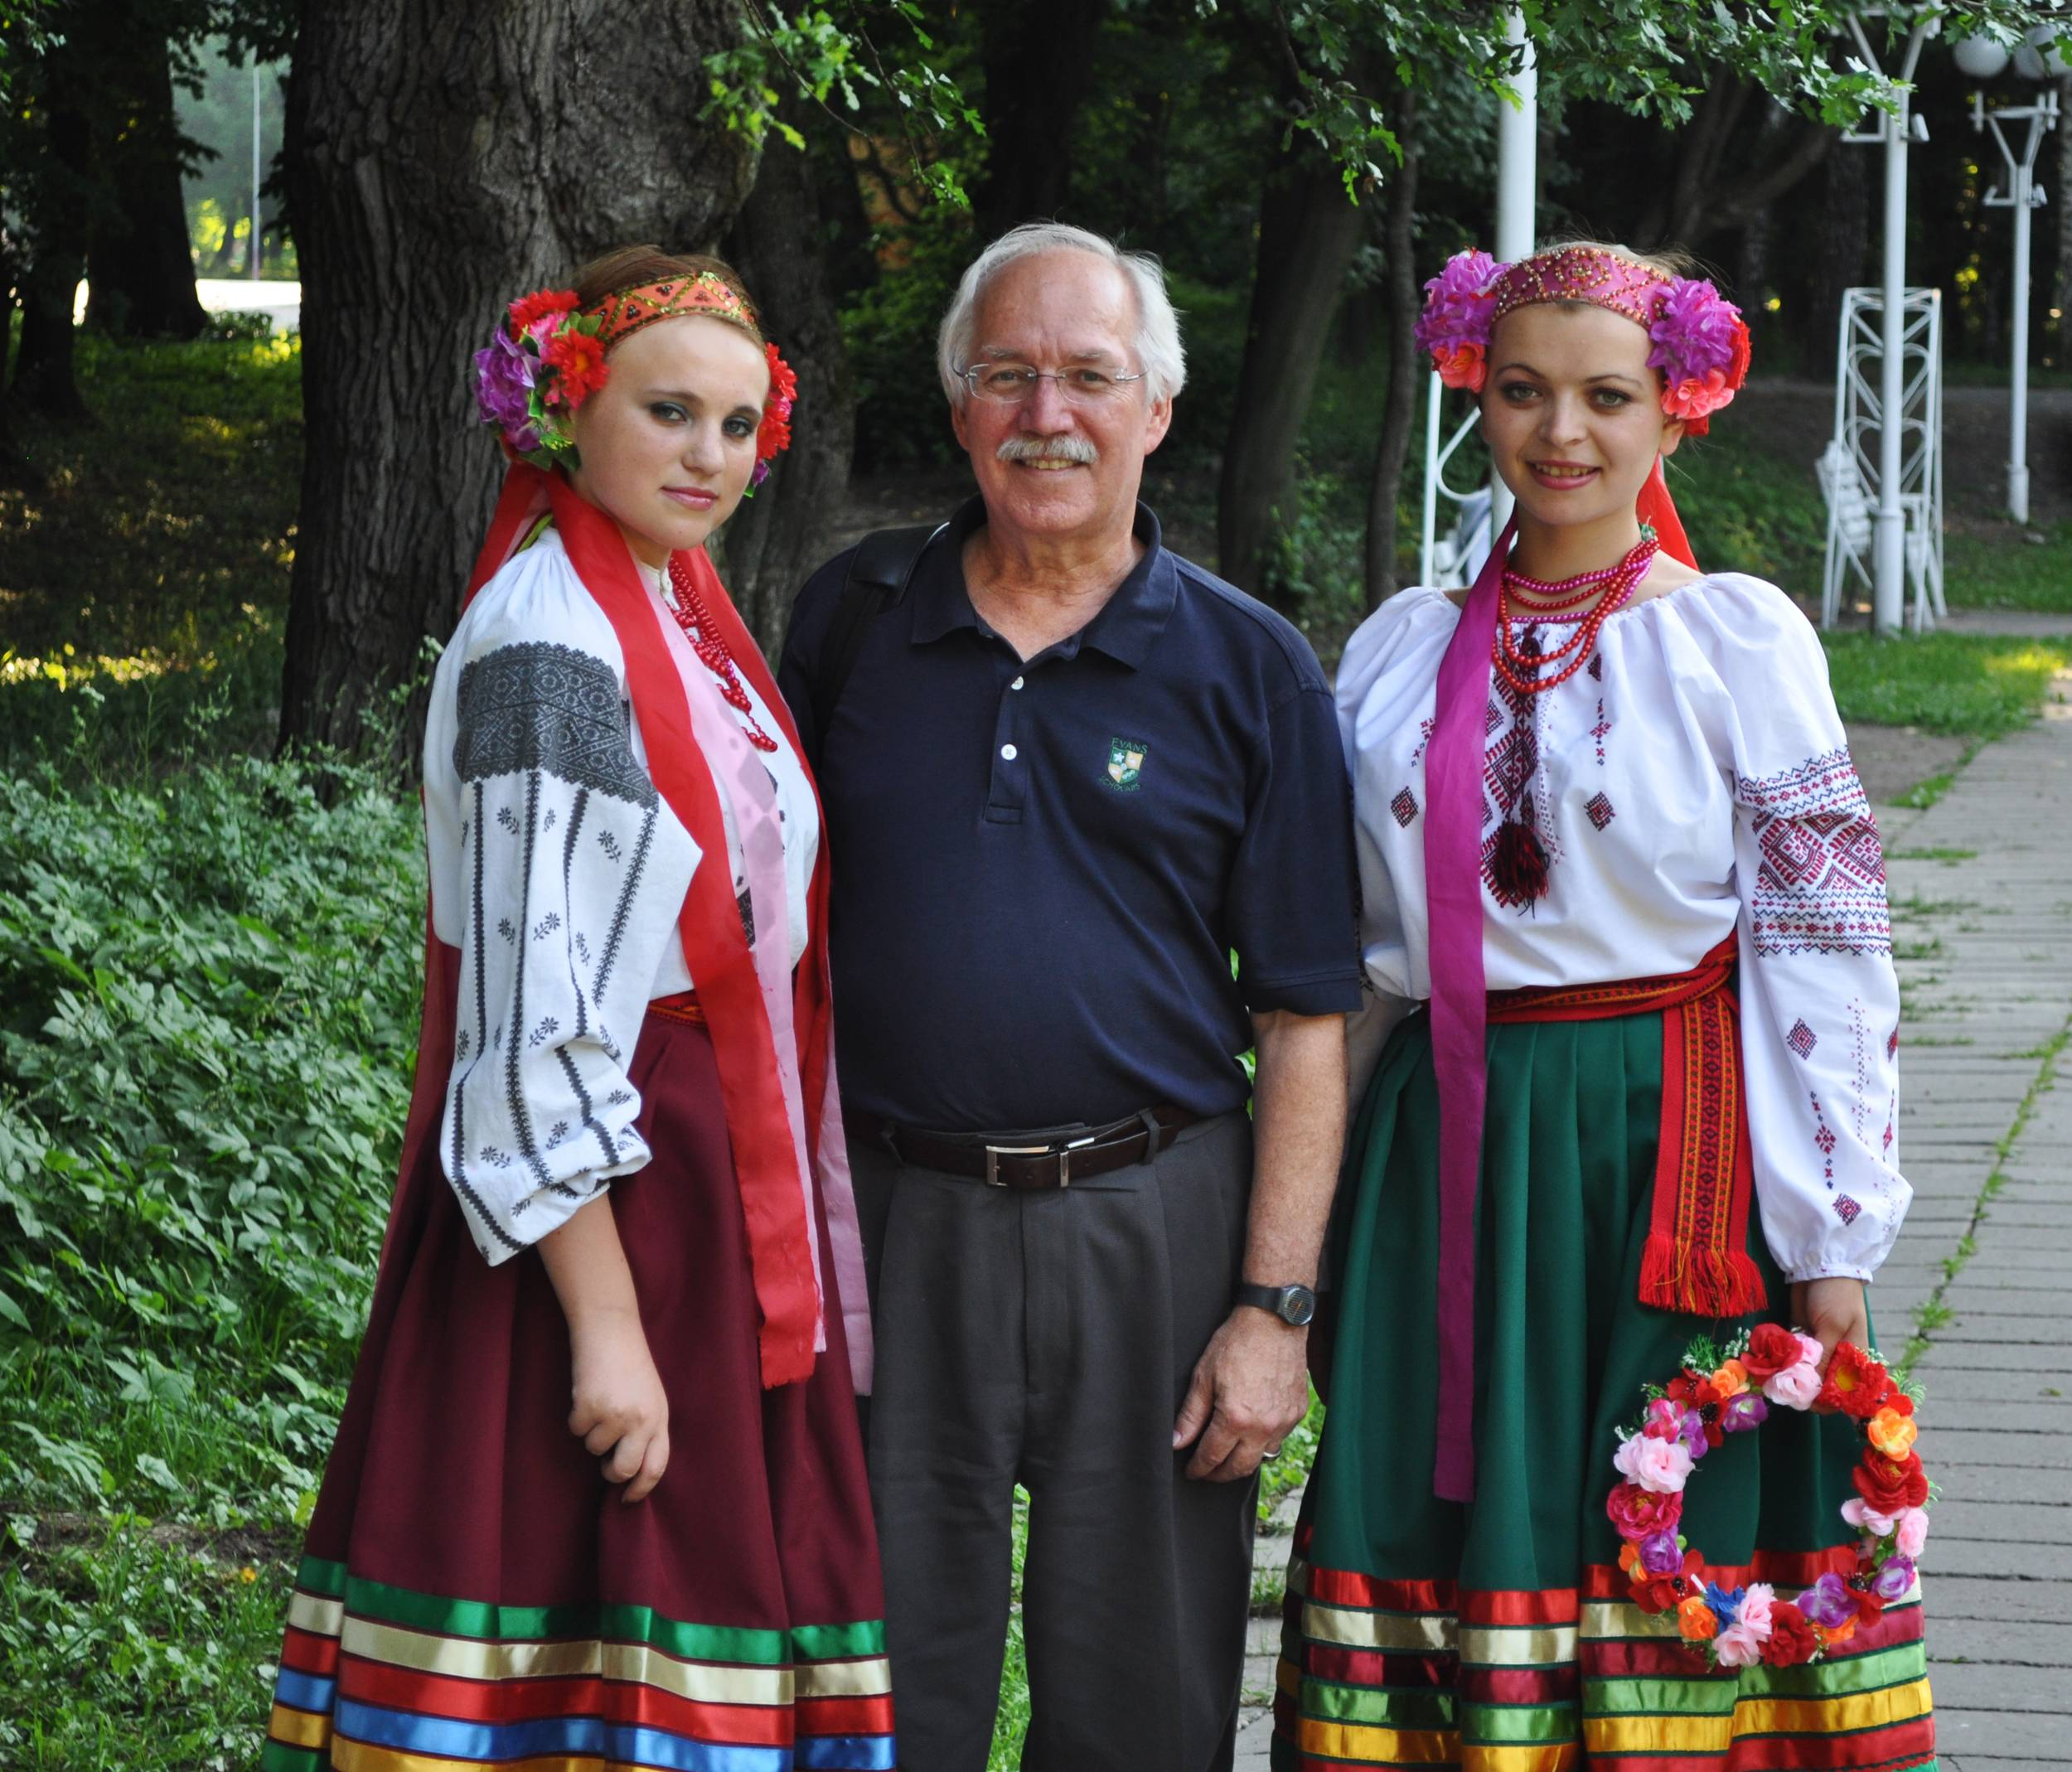 St. Charles Peace Corps volunteer describes his time in Ukraine